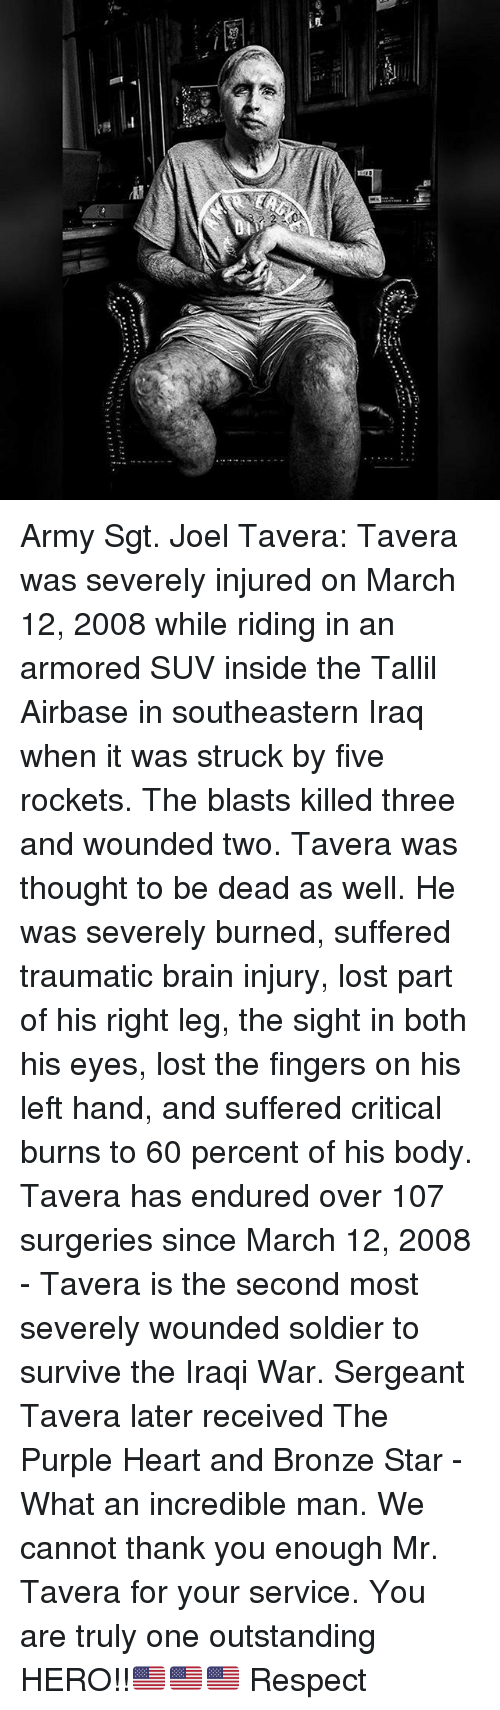 Memes, Respect, and Lost: Li!  zEzs Army Sgt. Joel Tavera: Tavera was severely injured on March 12, 2008 while riding in an armored SUV inside the Tallil Airbase in southeastern Iraq when it was struck by five rockets. The blasts killed three and wounded two. Tavera was thought to be dead as well. He was severely burned, suffered traumatic brain injury, lost part of his right leg, the sight in both his eyes, lost the fingers on his left hand, and suffered critical burns to 60 percent of his body. Tavera has endured over 107 surgeries since March 12, 2008 - Tavera is the second most severely wounded soldier to survive the Iraqi War. Sergeant Tavera later received The Purple Heart and Bronze Star - What an incredible man. We cannot thank you enough Mr. Tavera for your service. You are truly one outstanding HERO!!🇺🇸🇺🇸🇺🇸 Respect